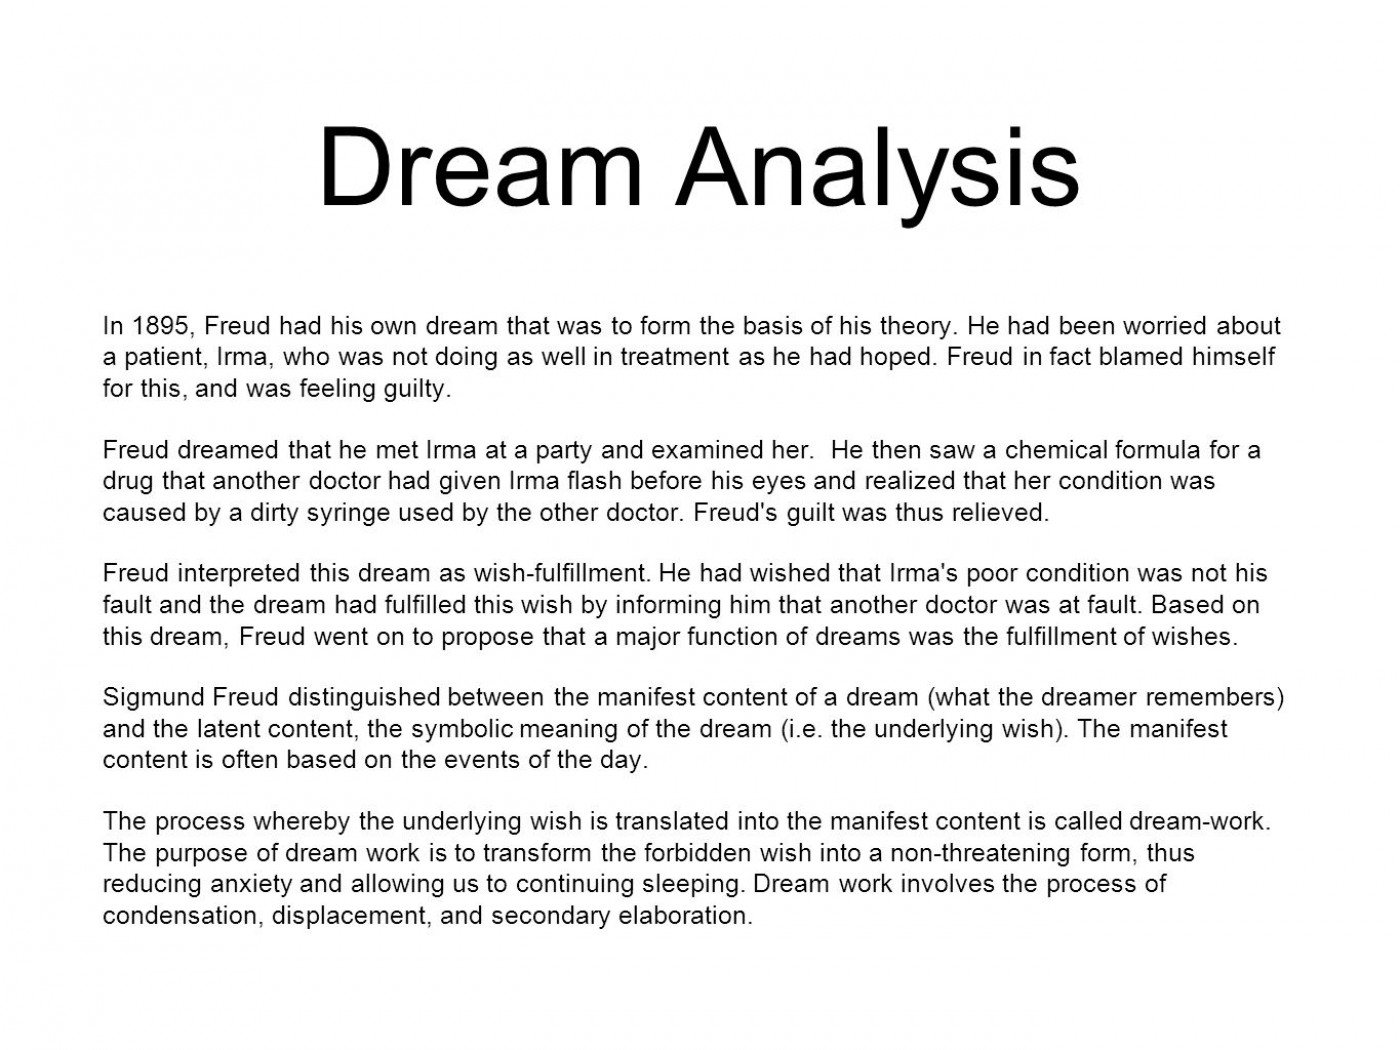 016 Research Paper Dreamanalysis Psychology Topics On Rare Dreams Papers Articles 1400